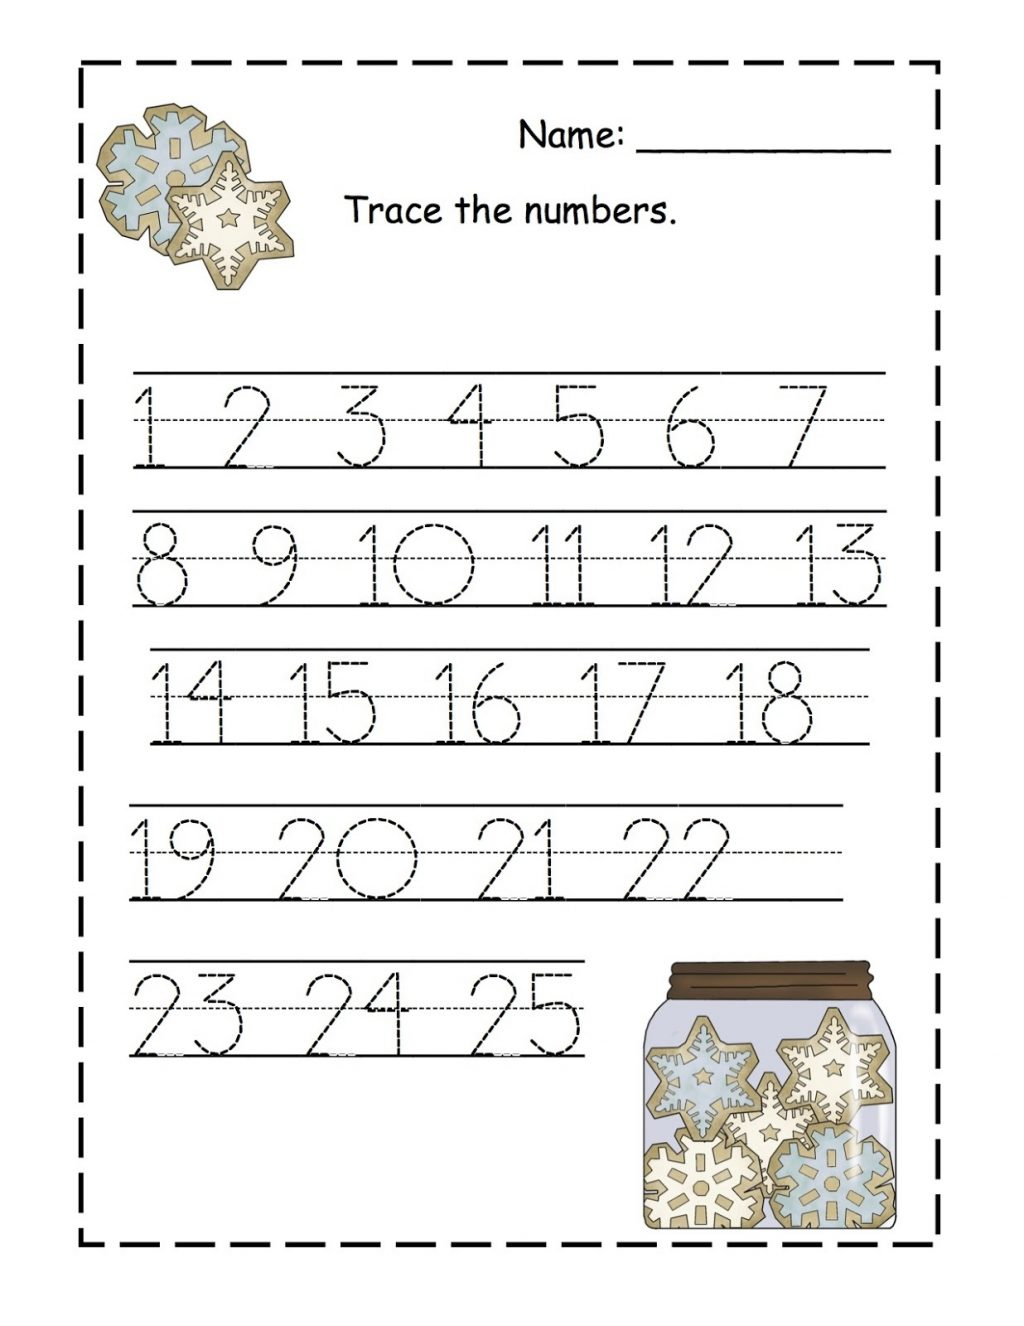 Worksheet ~ Number Tracing And Writing Worksheet For